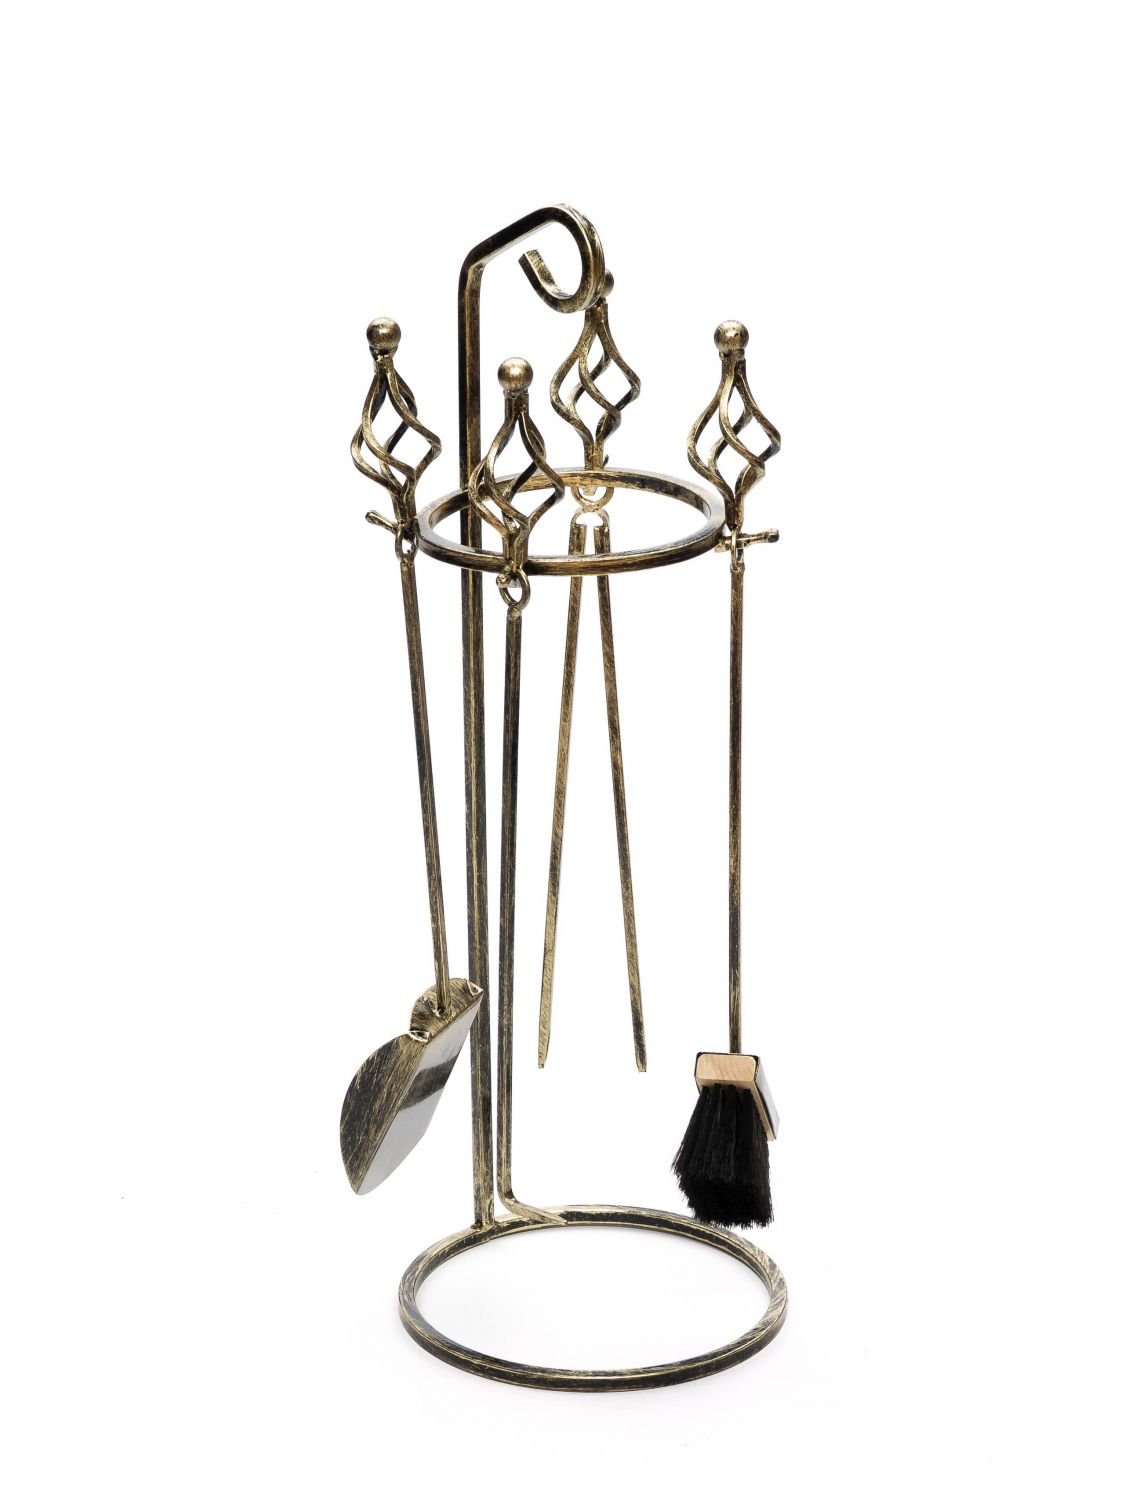 Fireplace Tools Set Fireplace Tool Fireplace Wrought Iron Fireplace Set 70cm Ebay